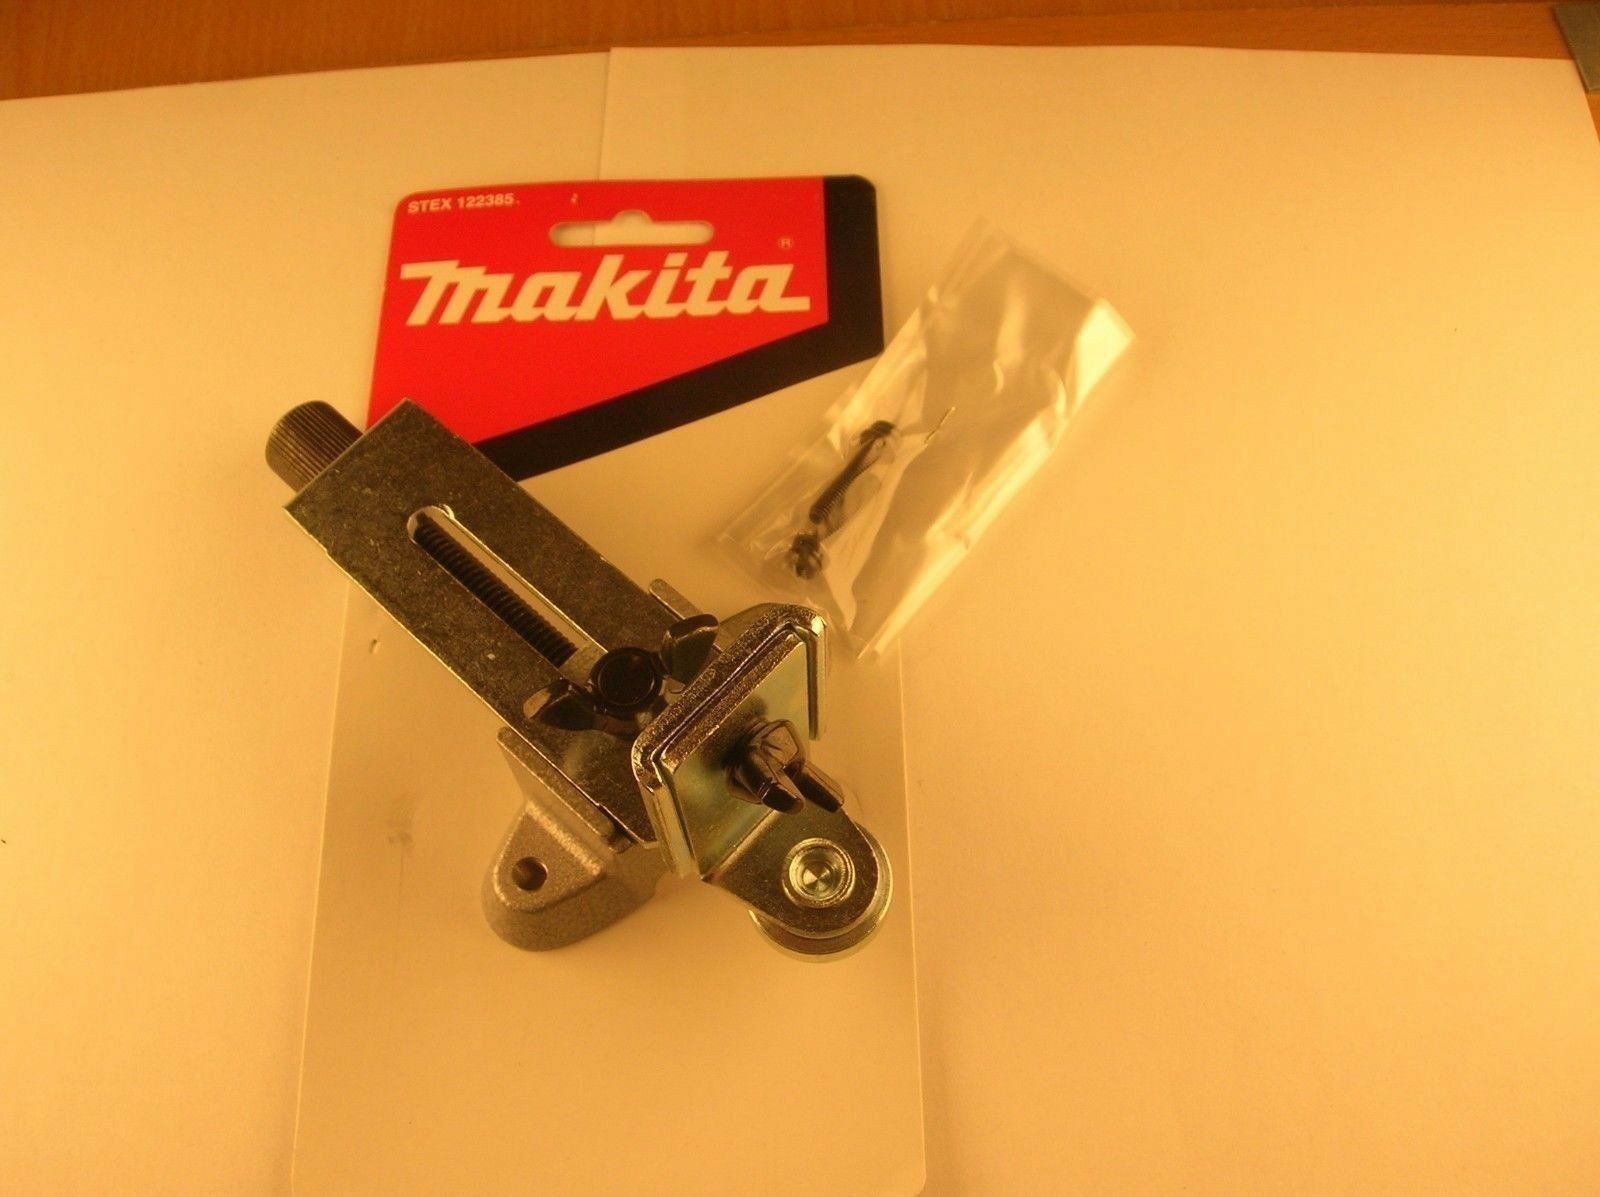 Genuine Makita STEX122385 Trimmer Guide for The RT0700C